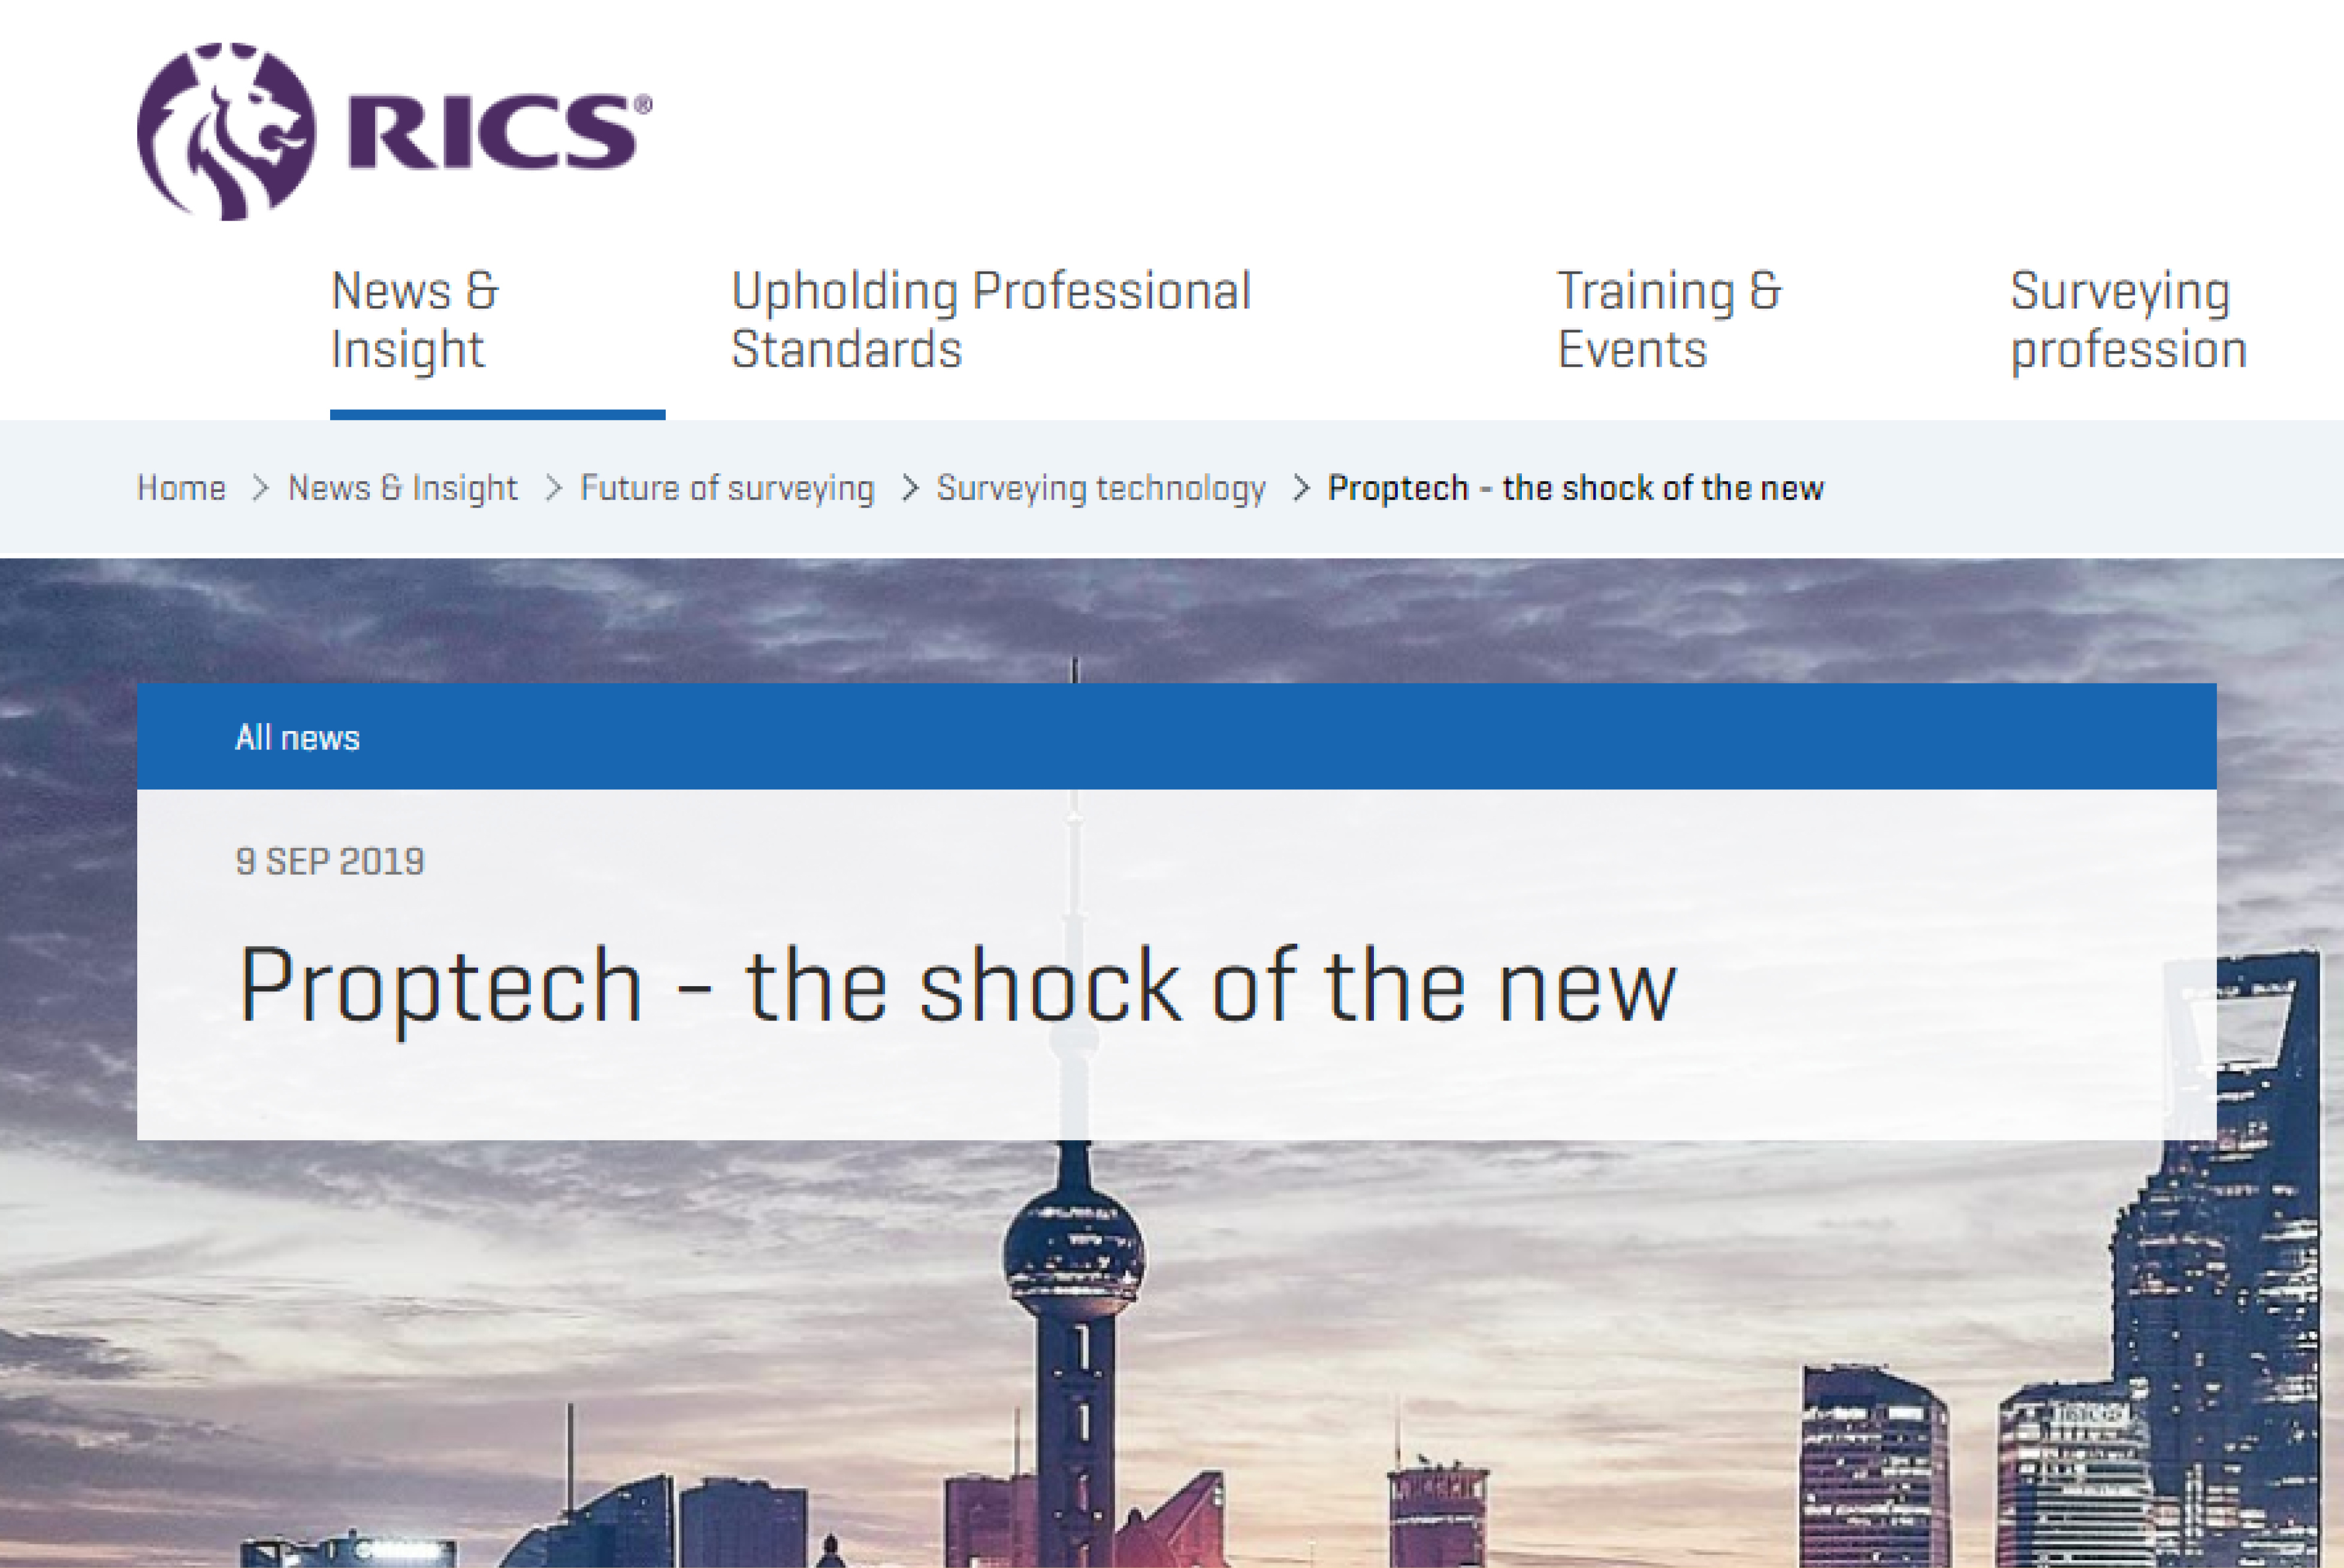 Proptech – the shock of the new